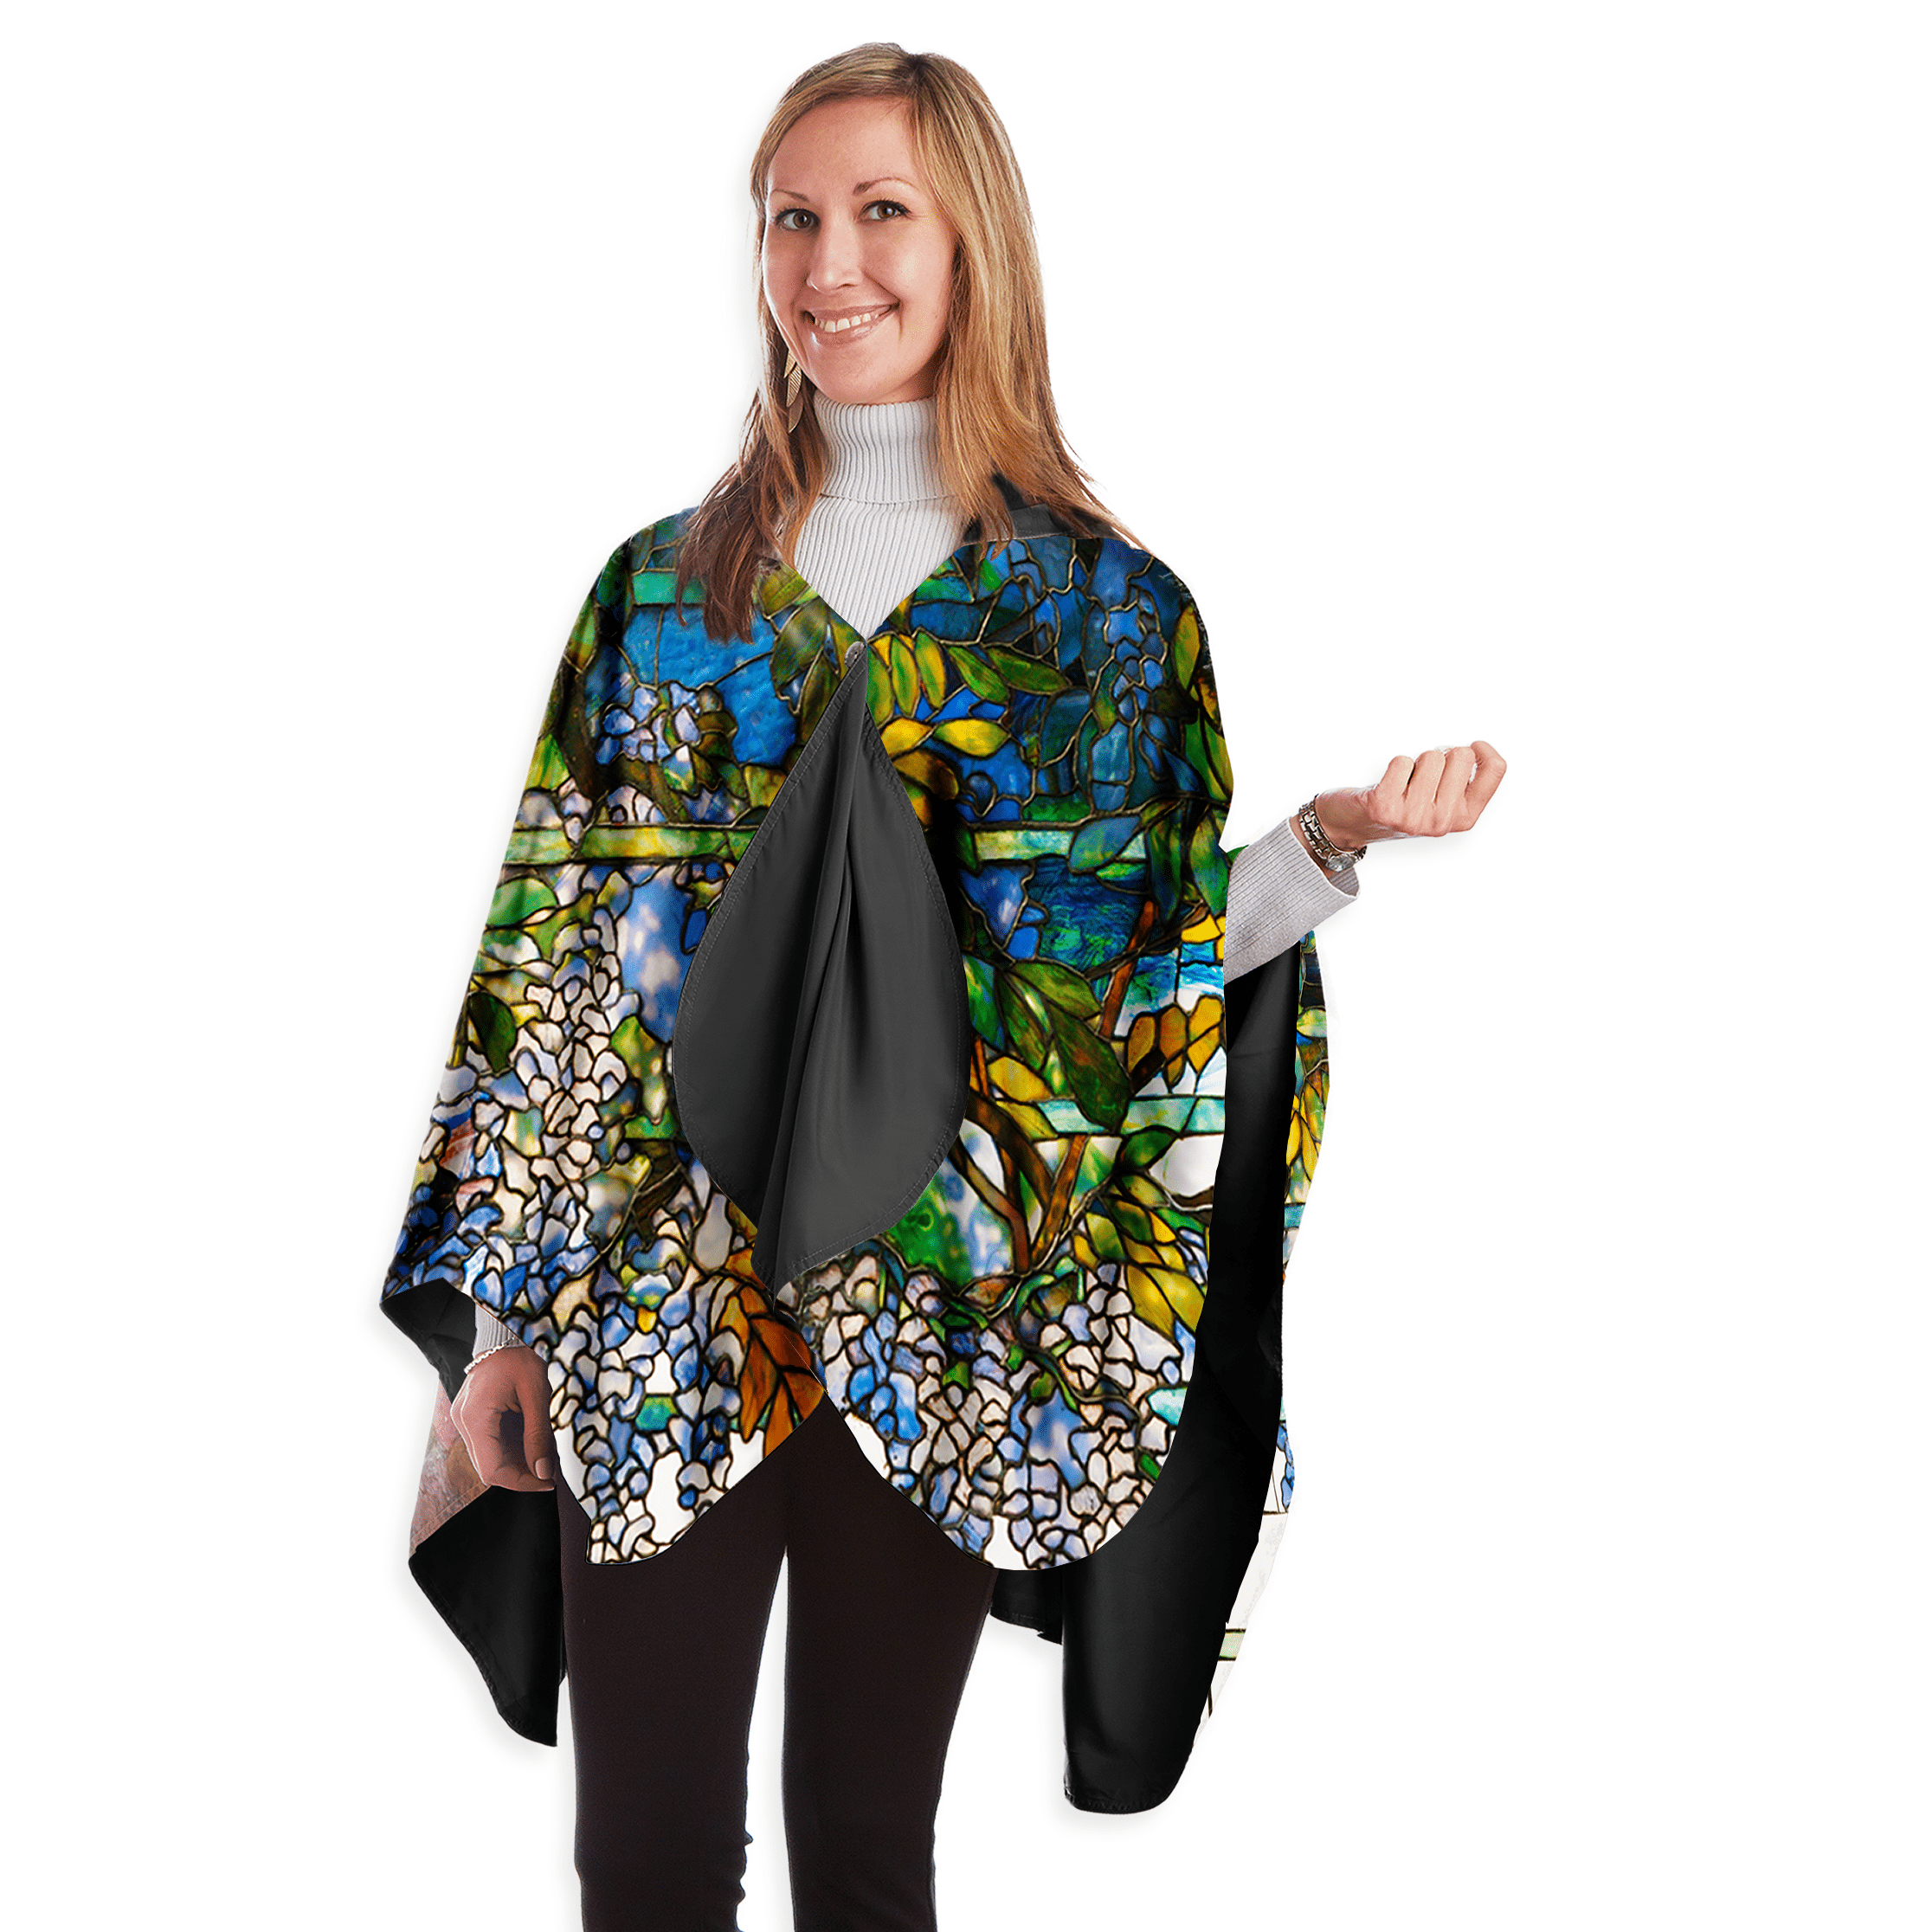 RainCaper Women's Museum Collection Rain Poncho (RCM) Waterproof Cape